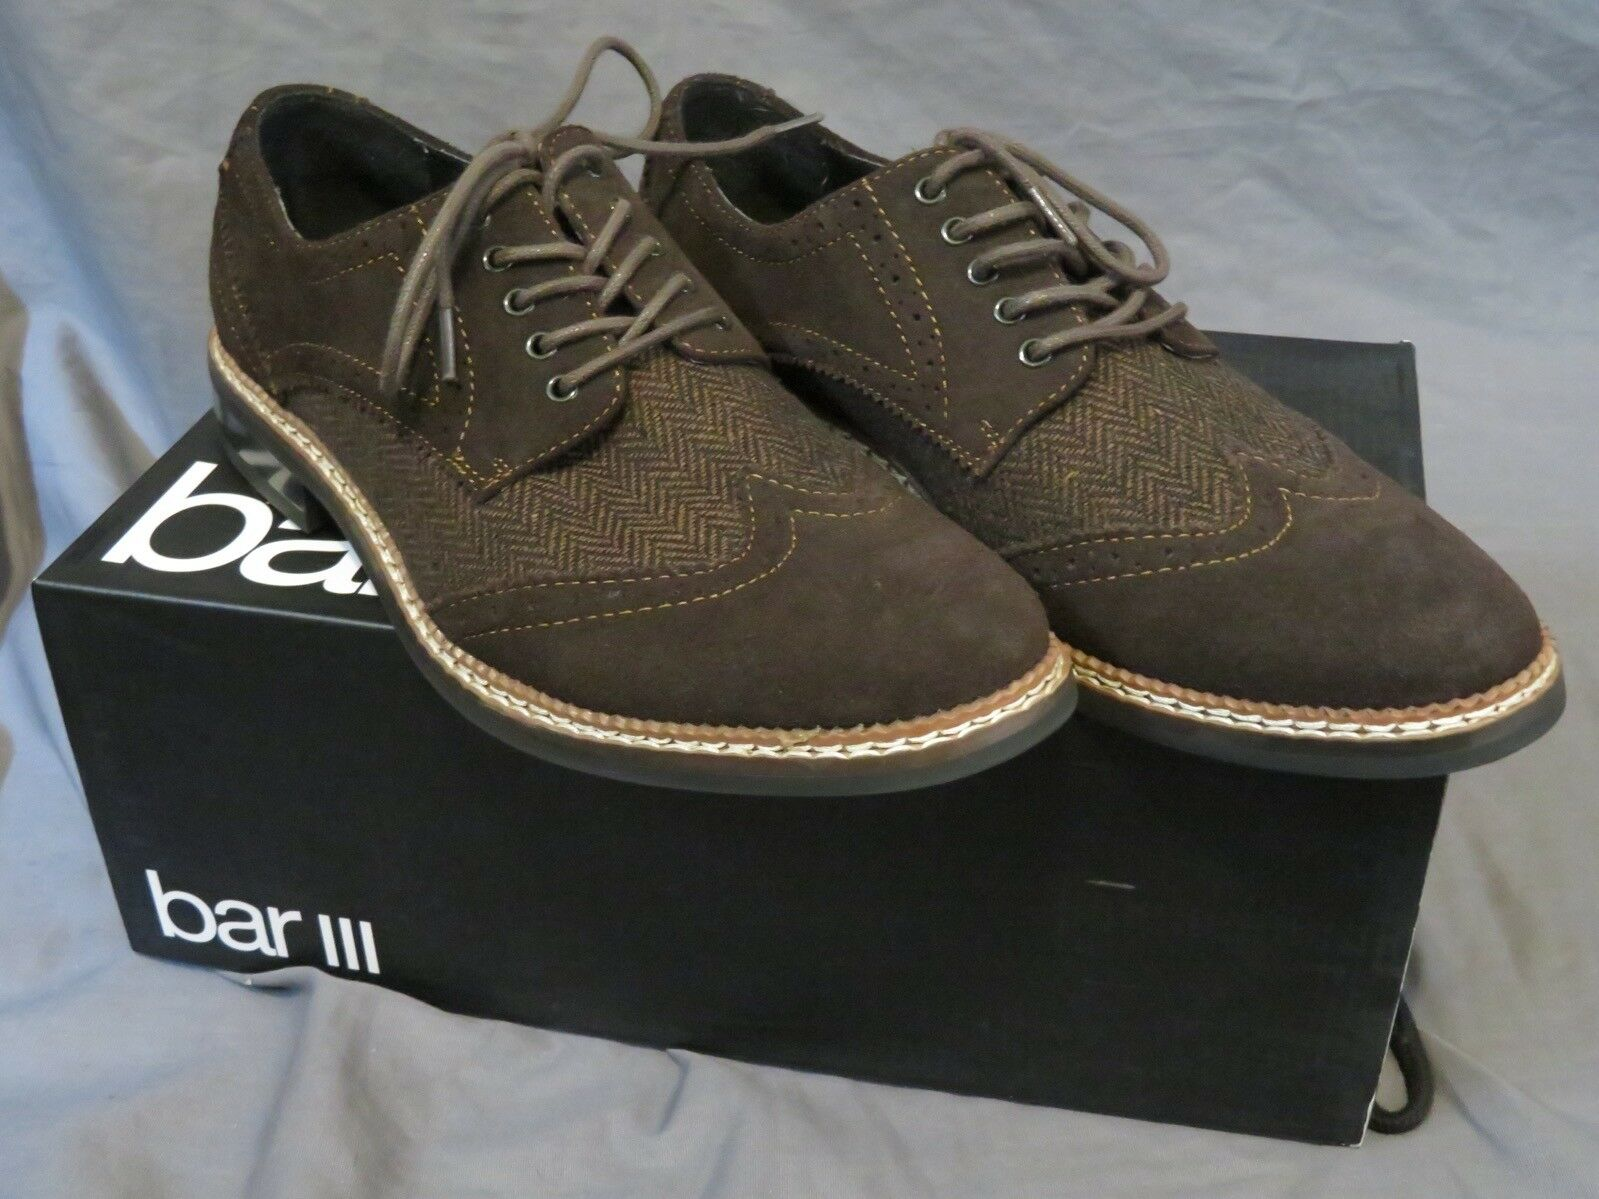 Men's Bar III Monte Brown Suede Leather Wing Tip Oxfords Size 7.5 WORN ONCE